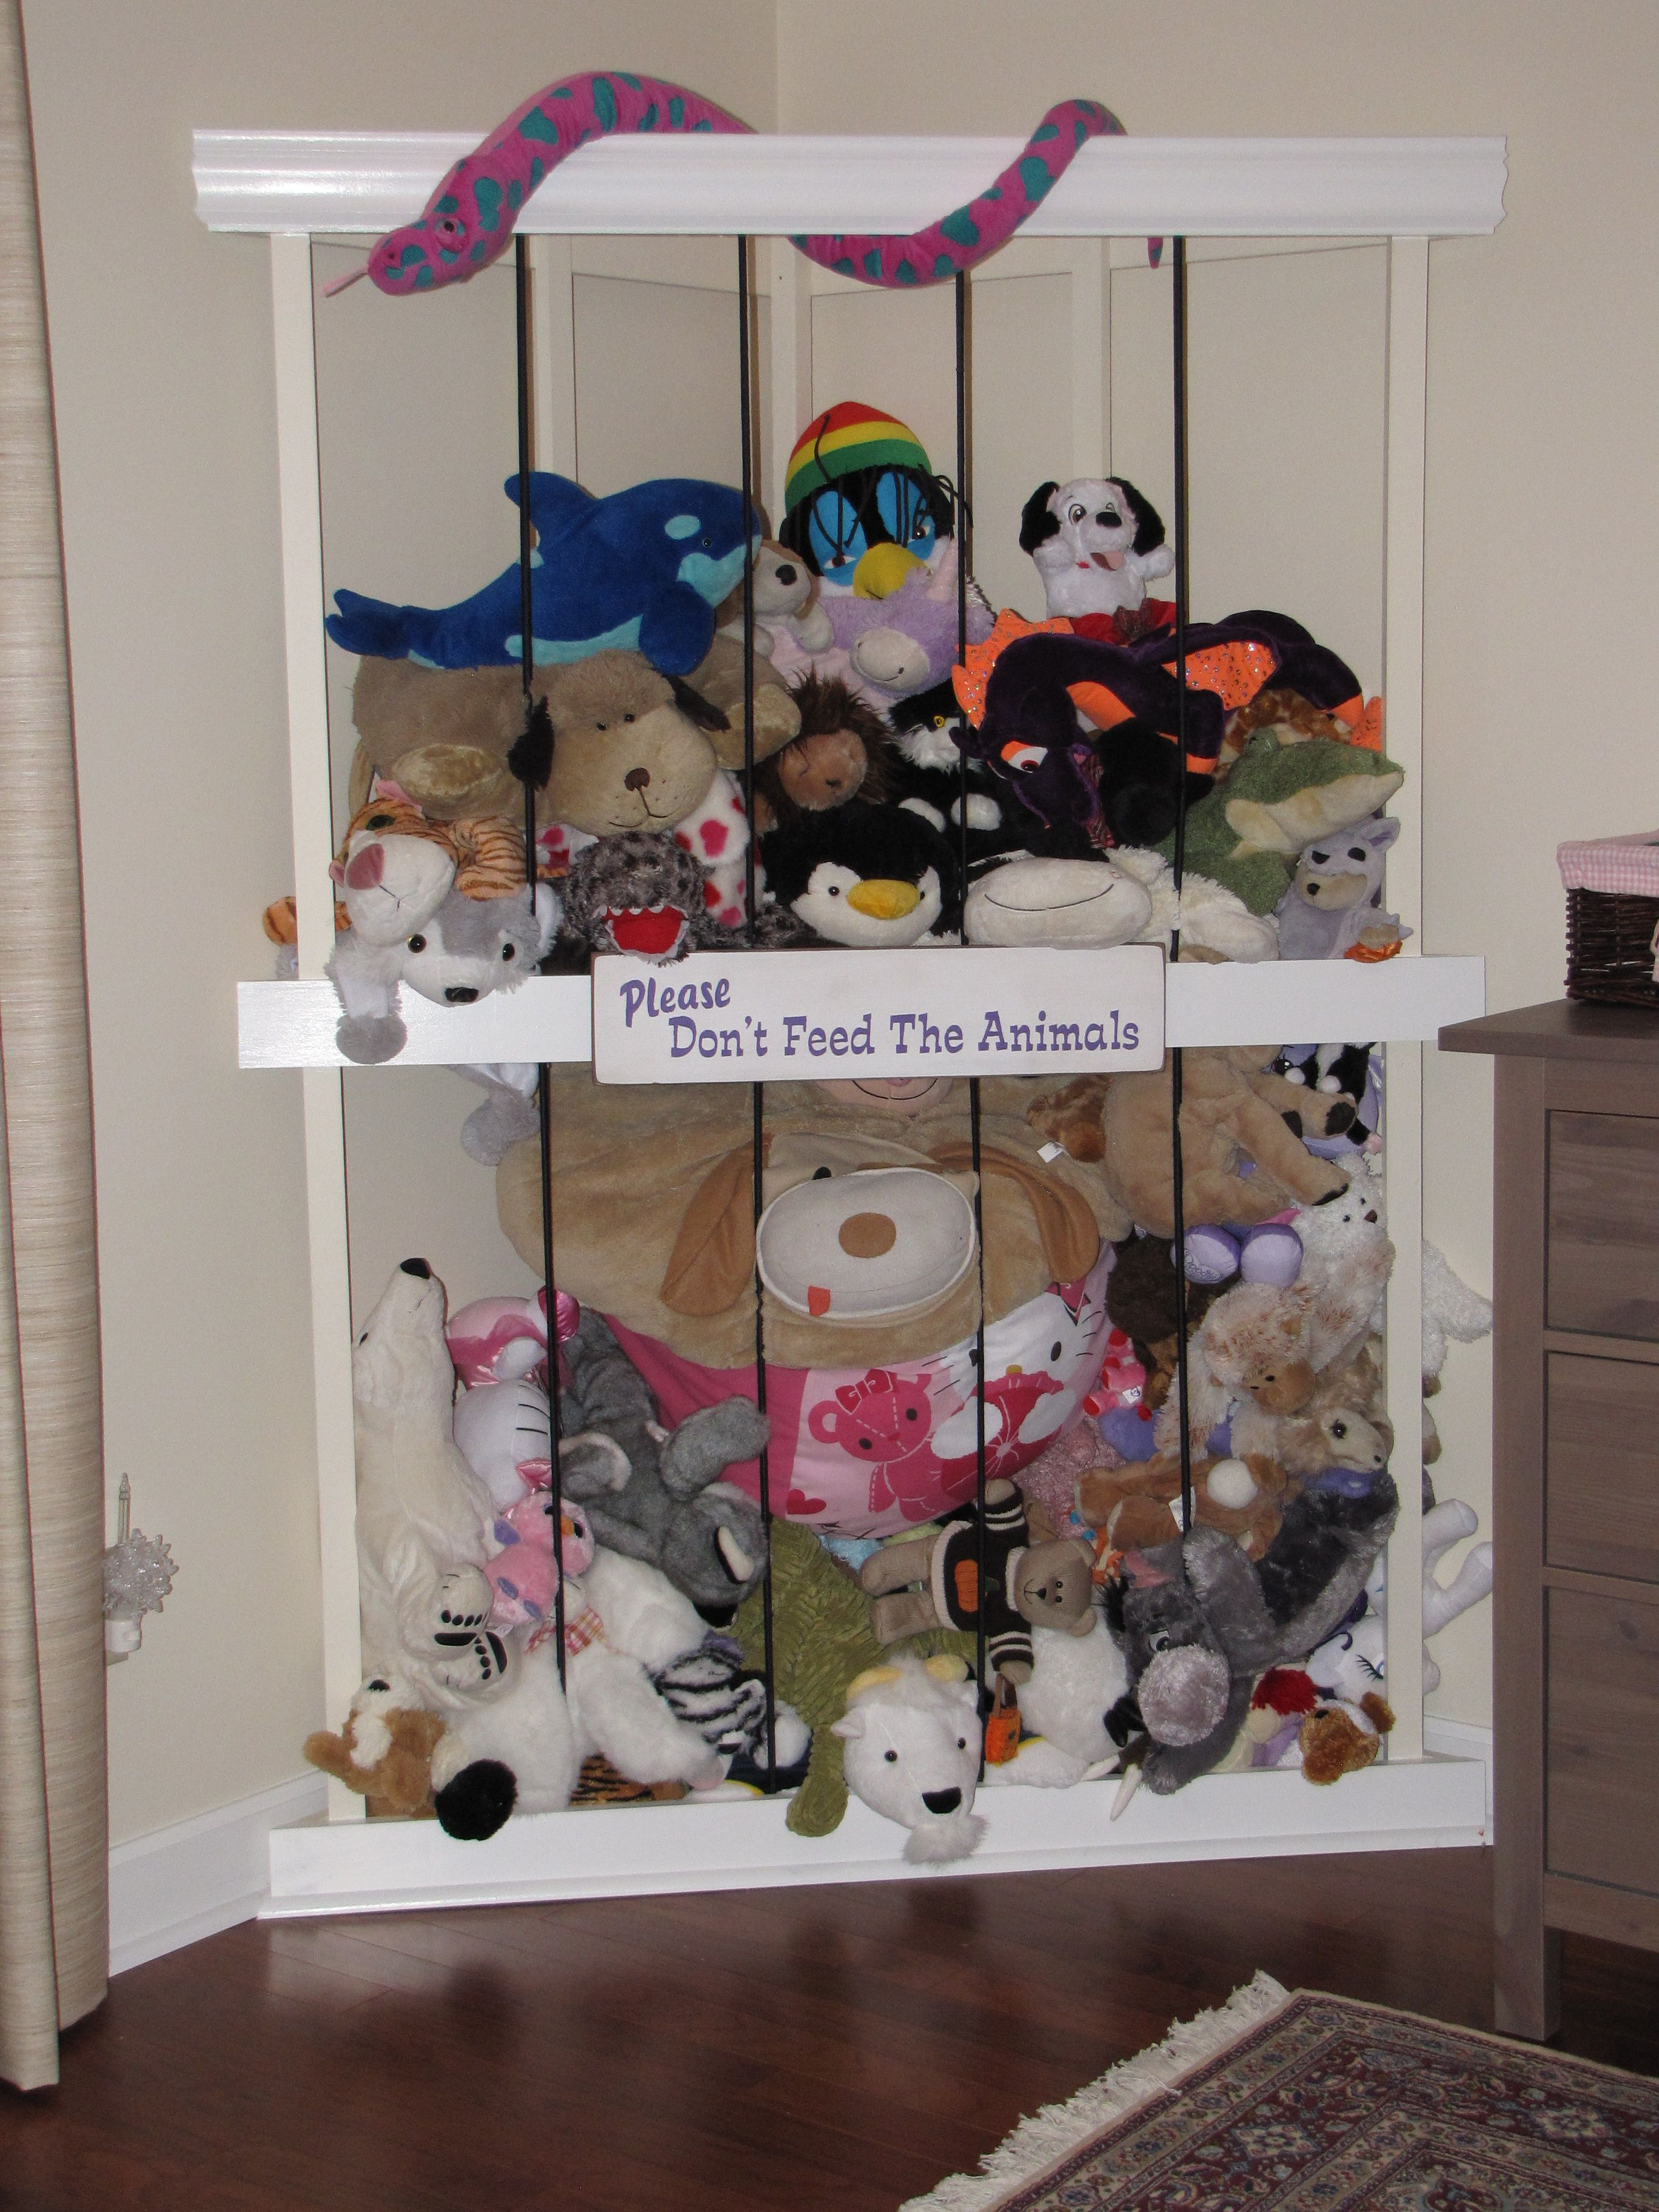 Stuffed Animal Zoo My Husband Built This Corner Fit Zoo Based On Some Other Designs We Saw Posted On Pinterest Zoo Animals Stuffed Animal Storage Playroom